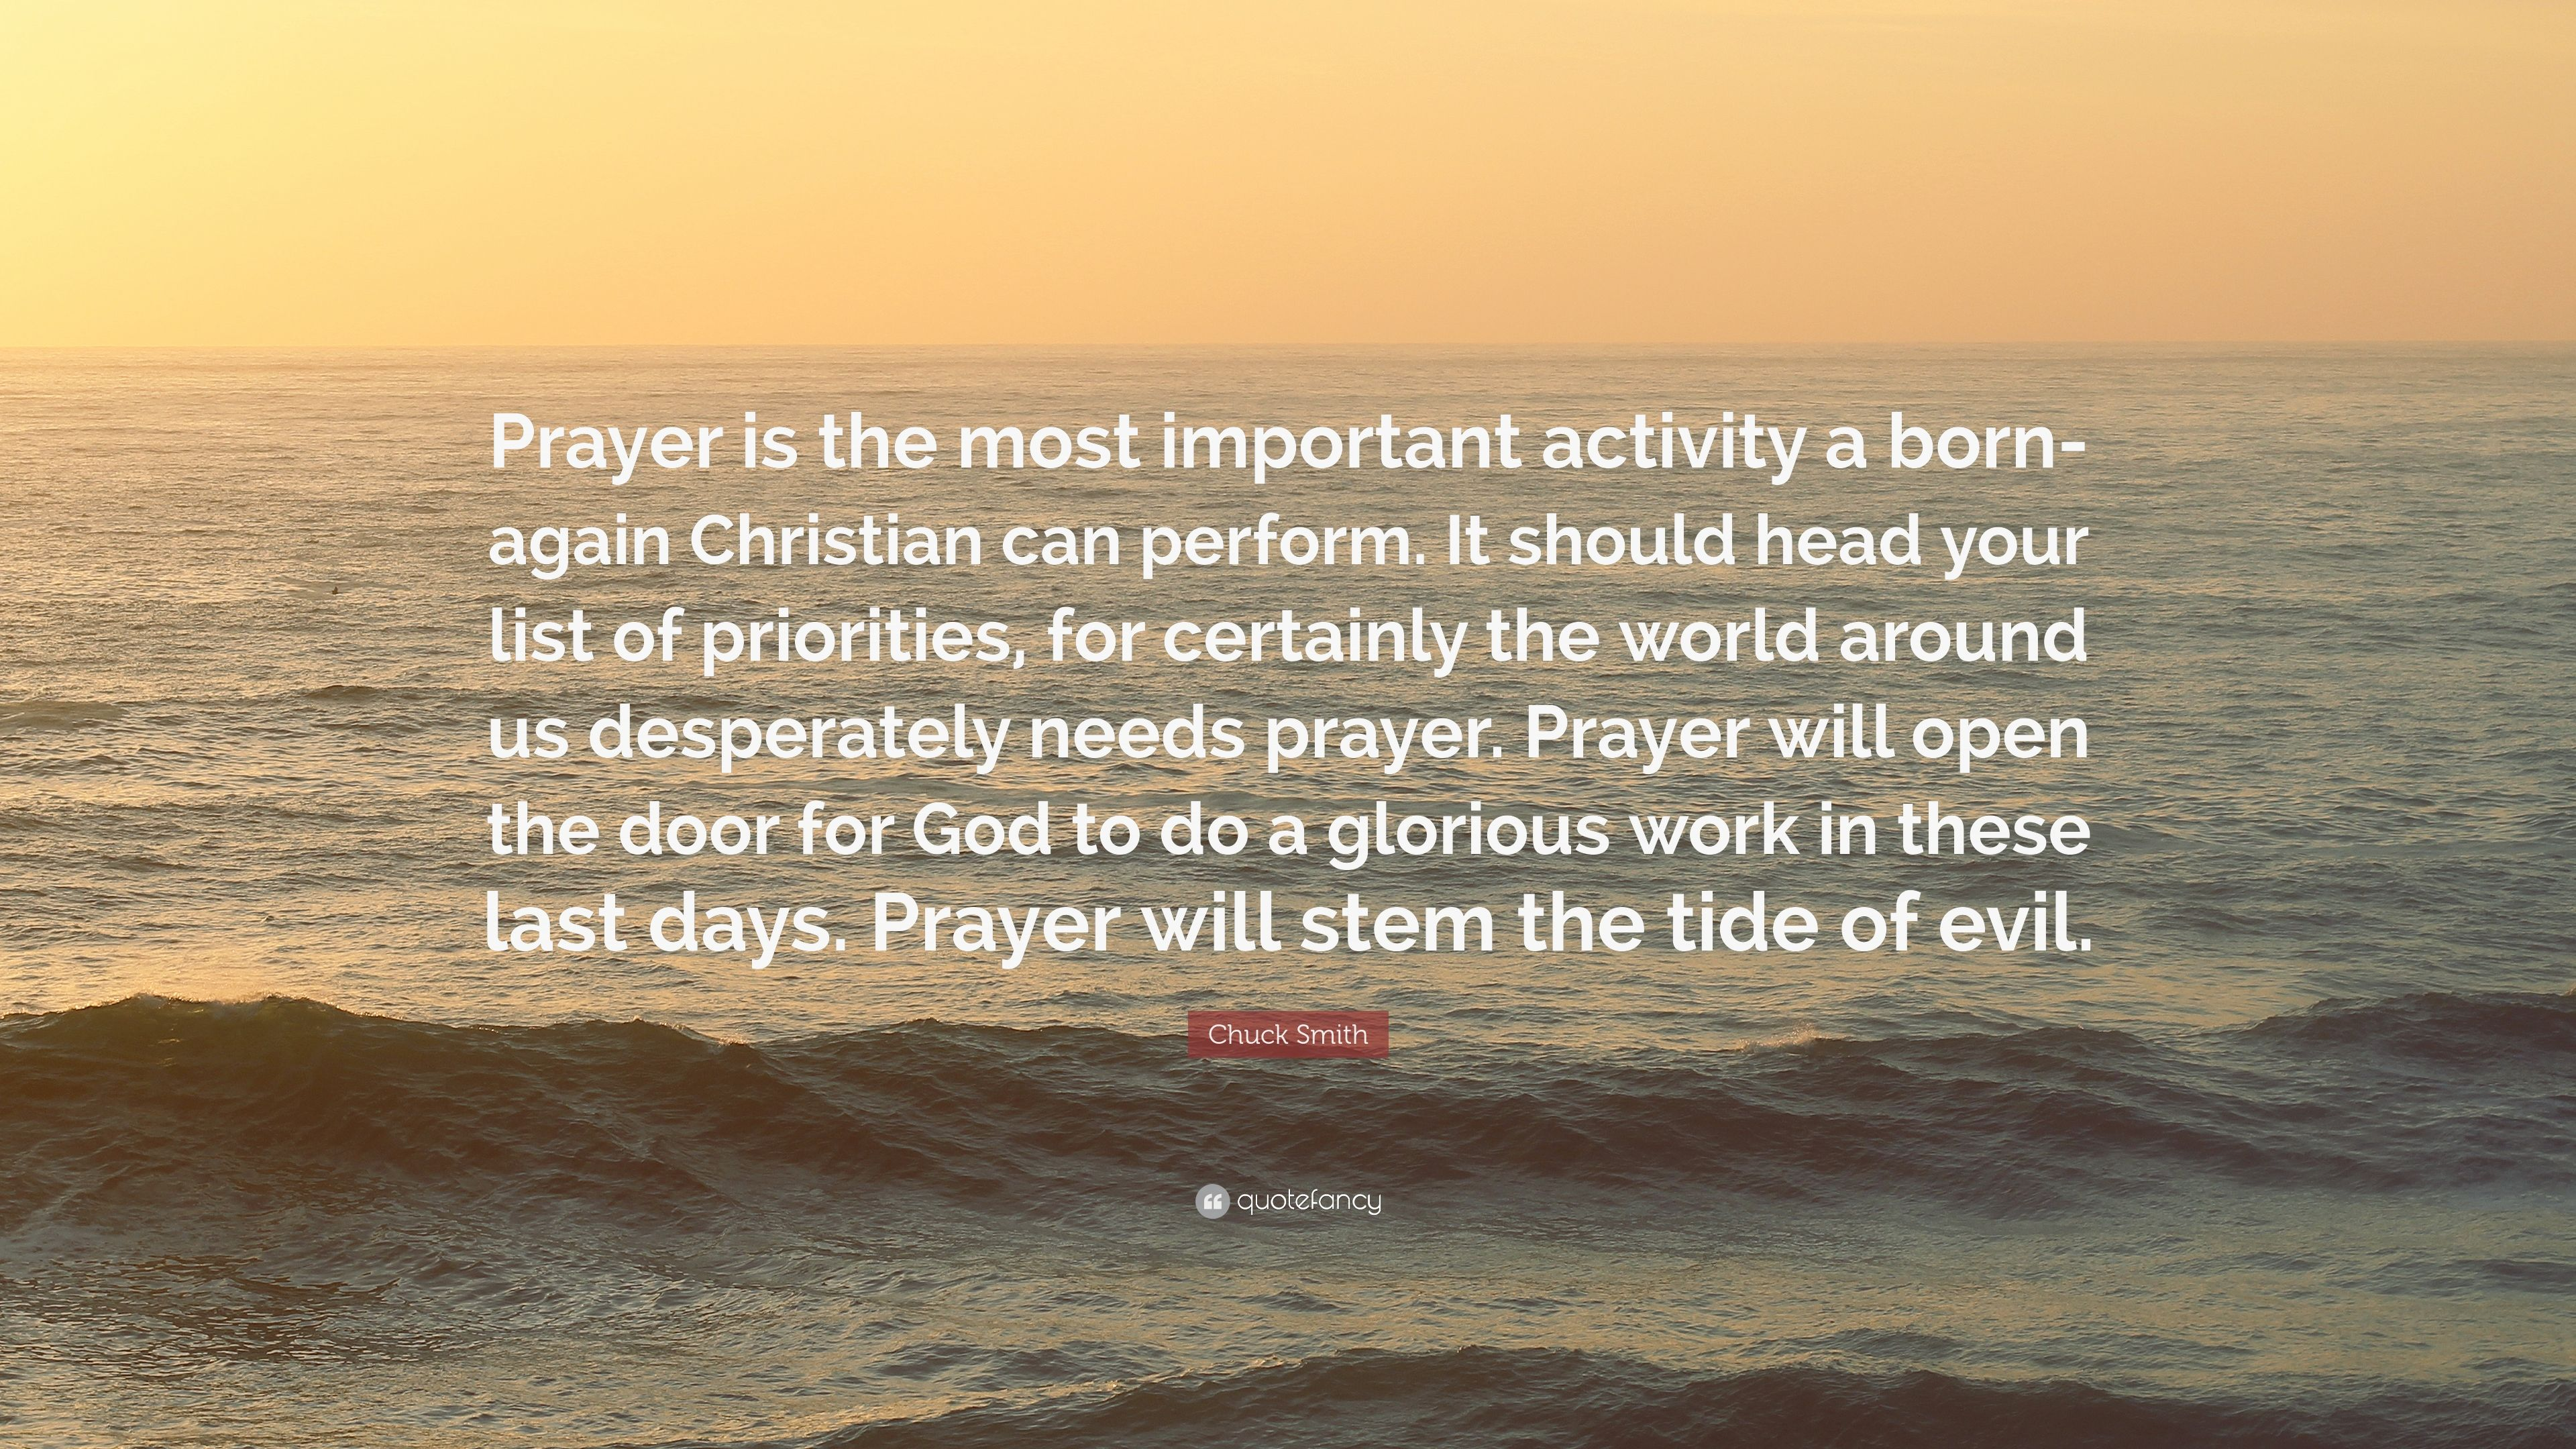 Swami Vivekananda Quotes Wallpaper Chuck Smith Quote Prayer Is The Most Important Activity